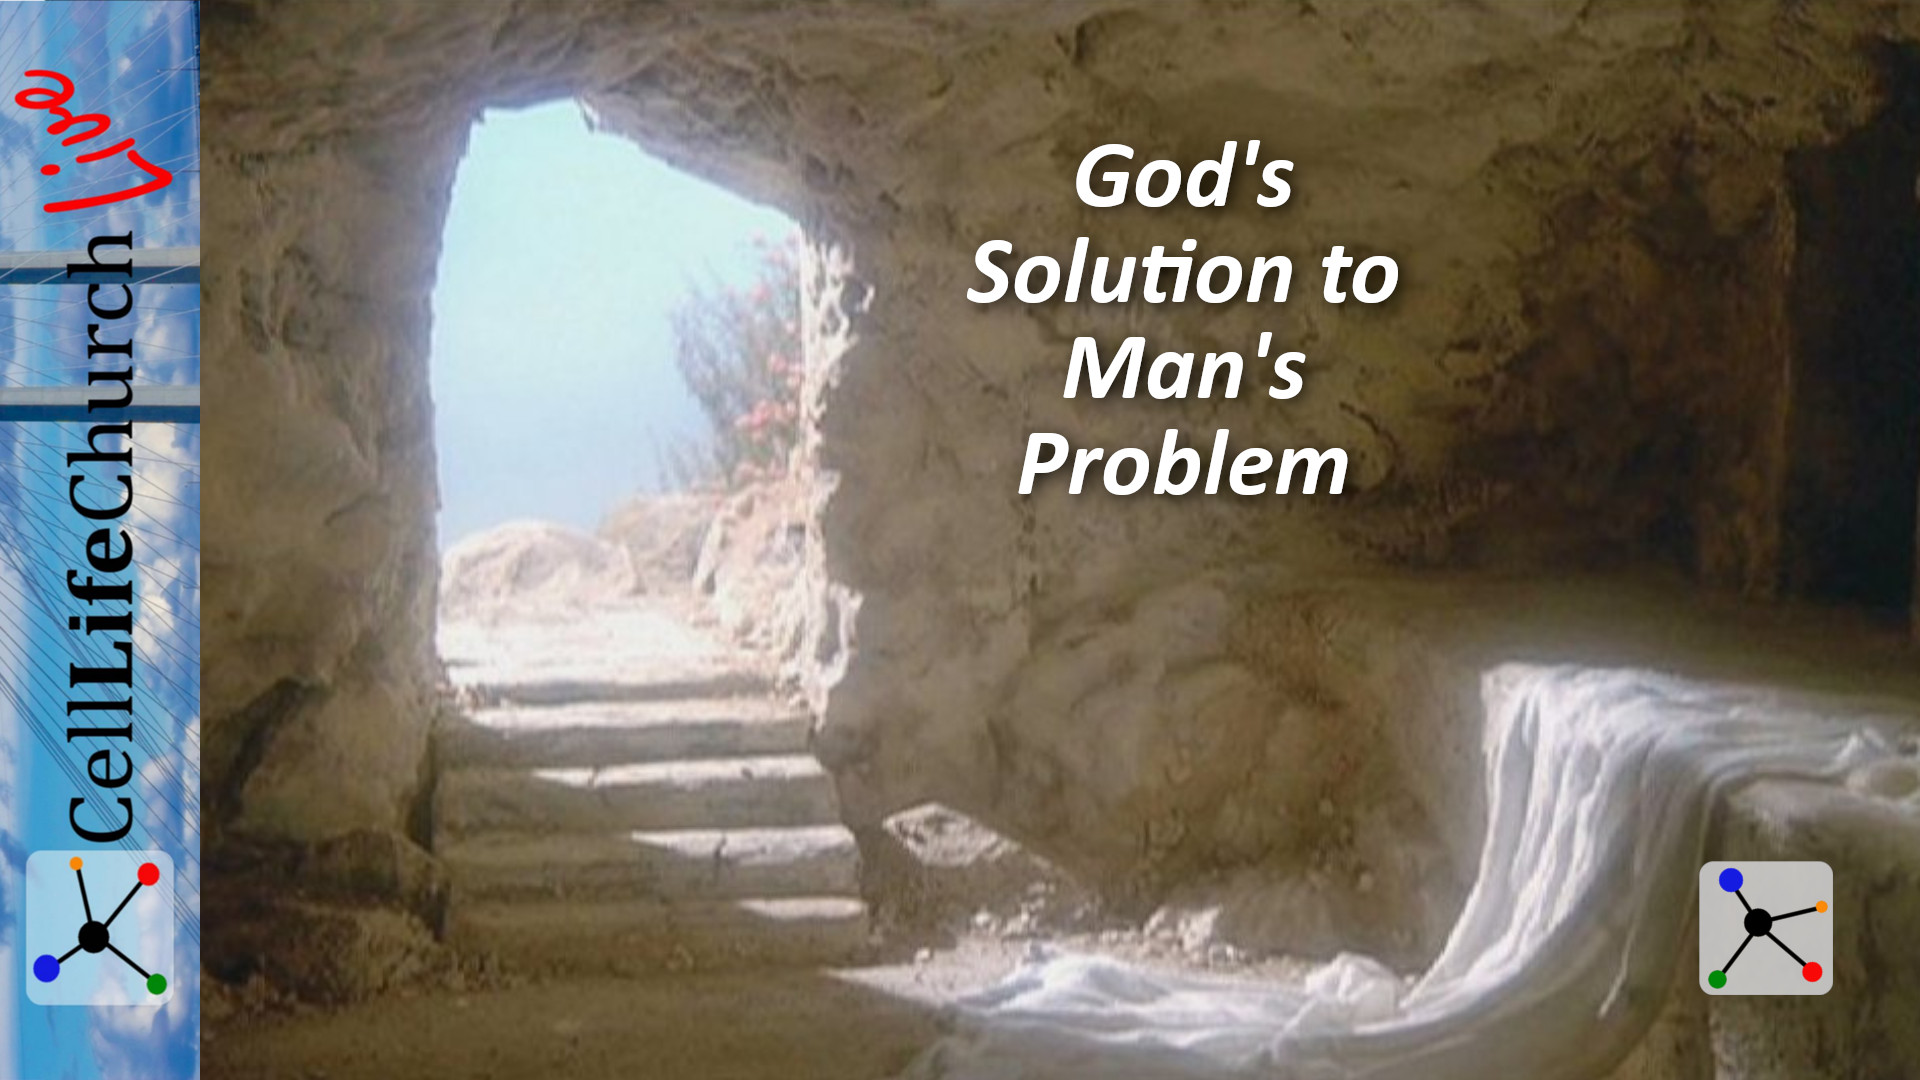 God's Solution to Man's Problem